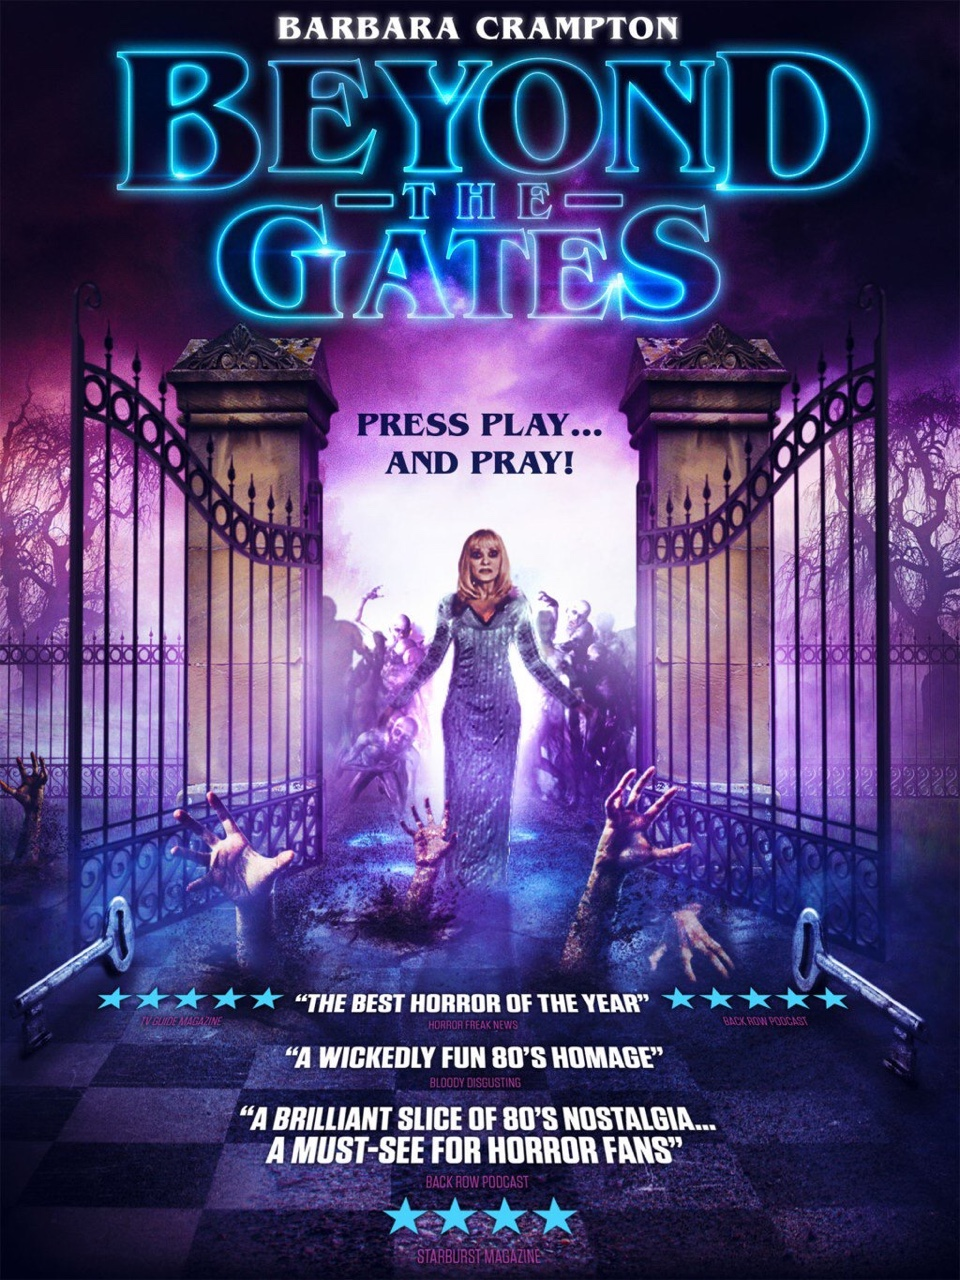 Beyond The Gates (2016) (With images) Movies, Horror